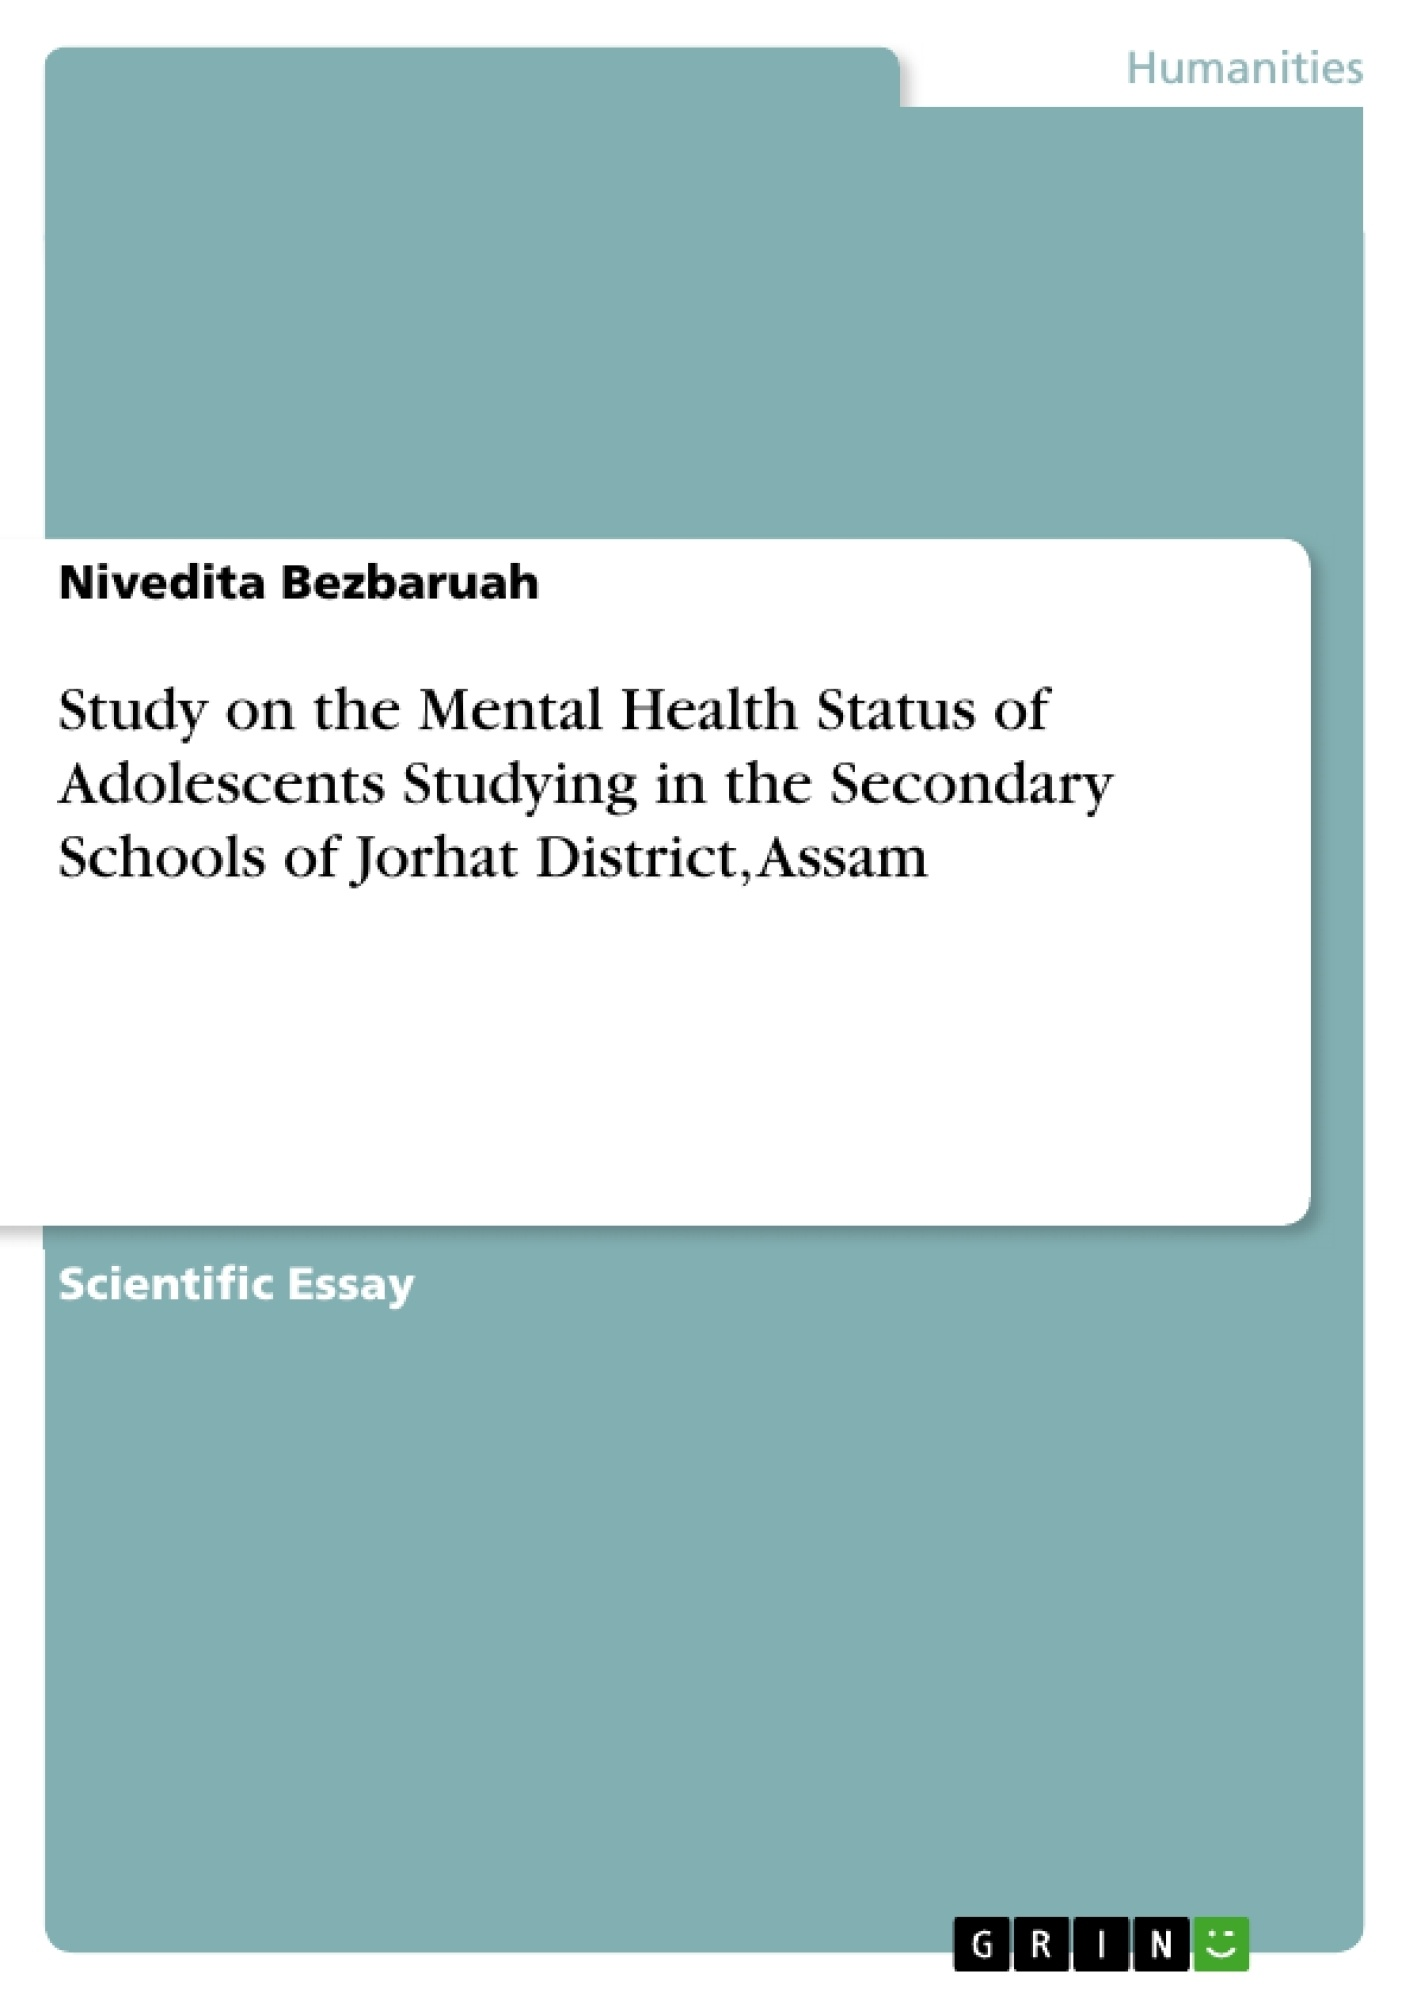 Title: Study on the Mental Health Status of Adolescents Studying in the Secondary Schools of Jorhat District, Assam